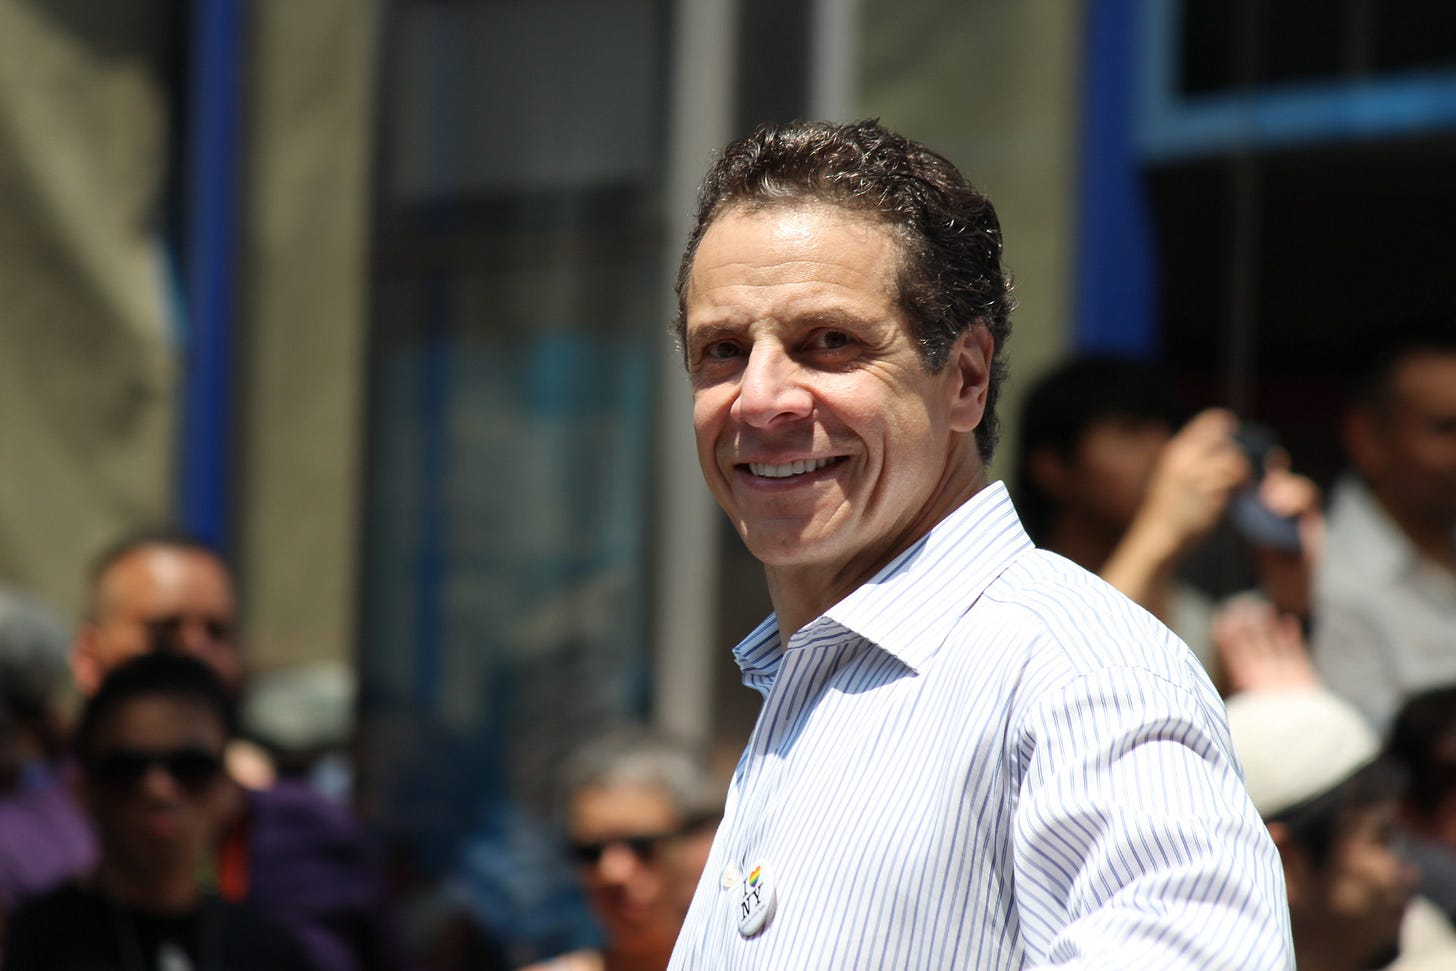 photo of Andrew Cuomo standing on a sunlit NY street